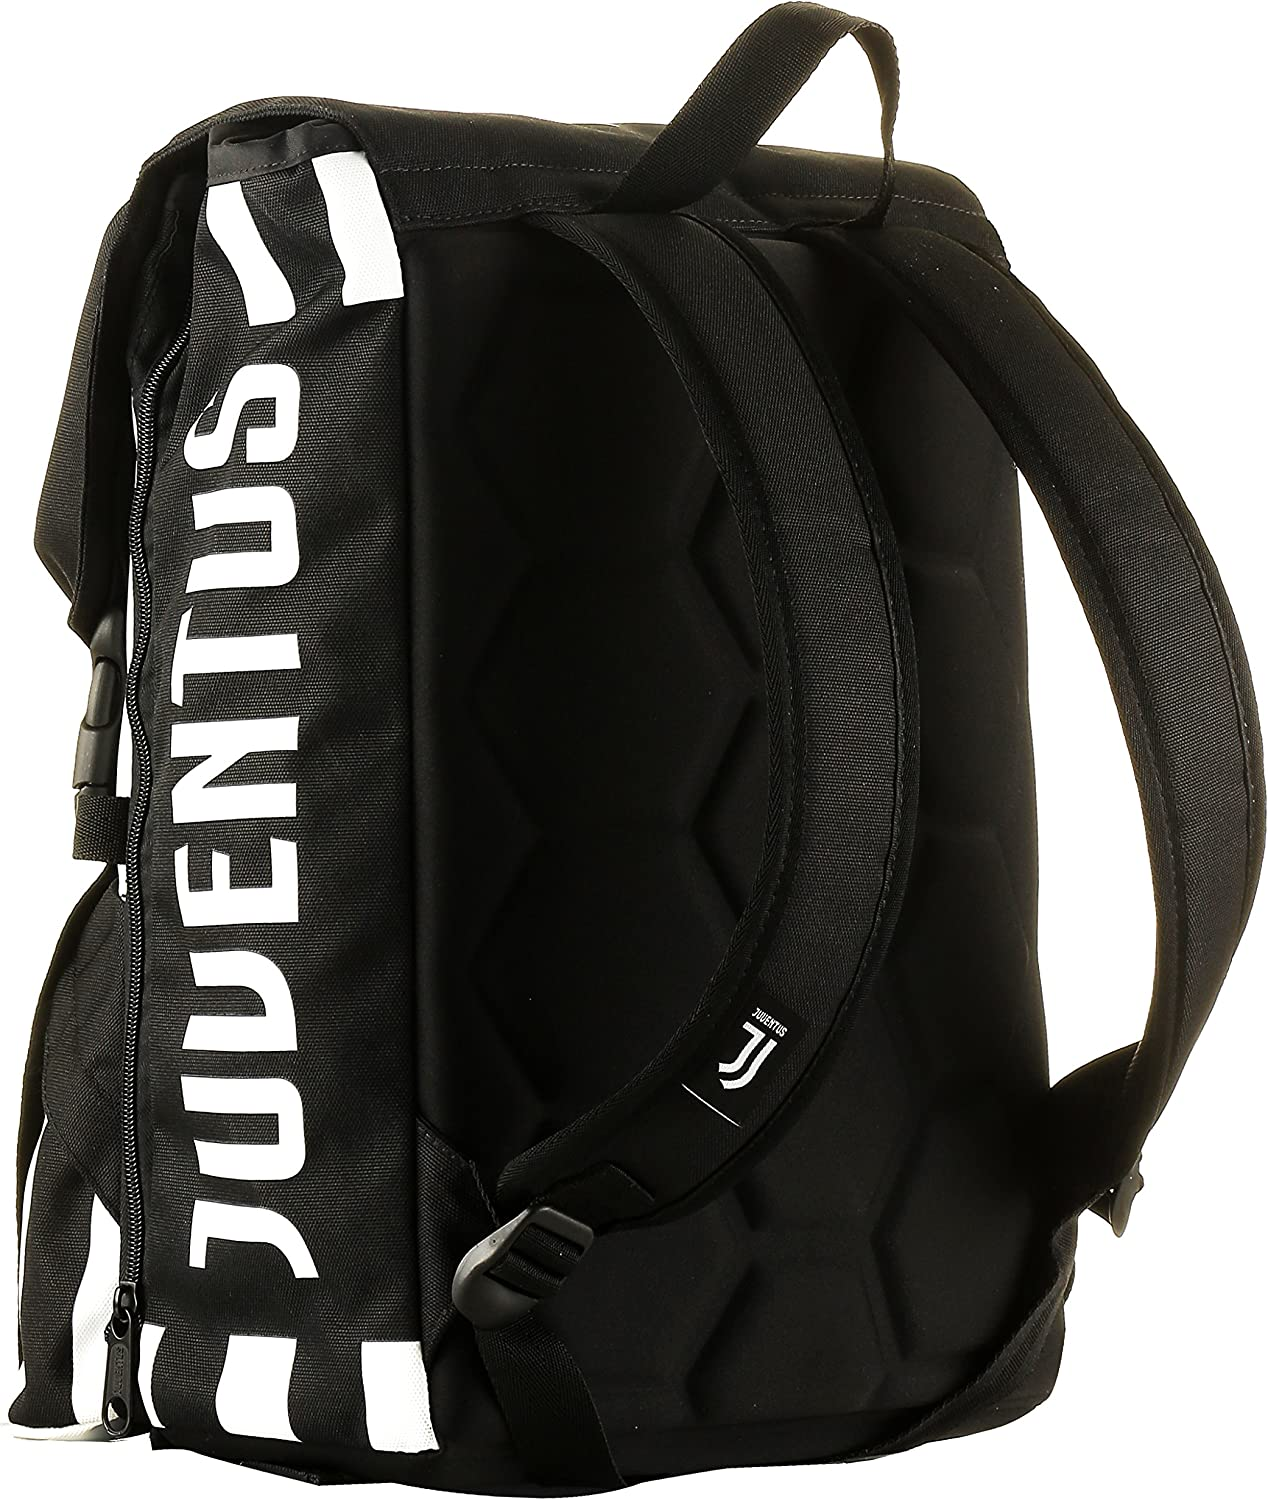 Mochila Escolar Extensible Juventus Assist , 28 Lt , Red Para ...